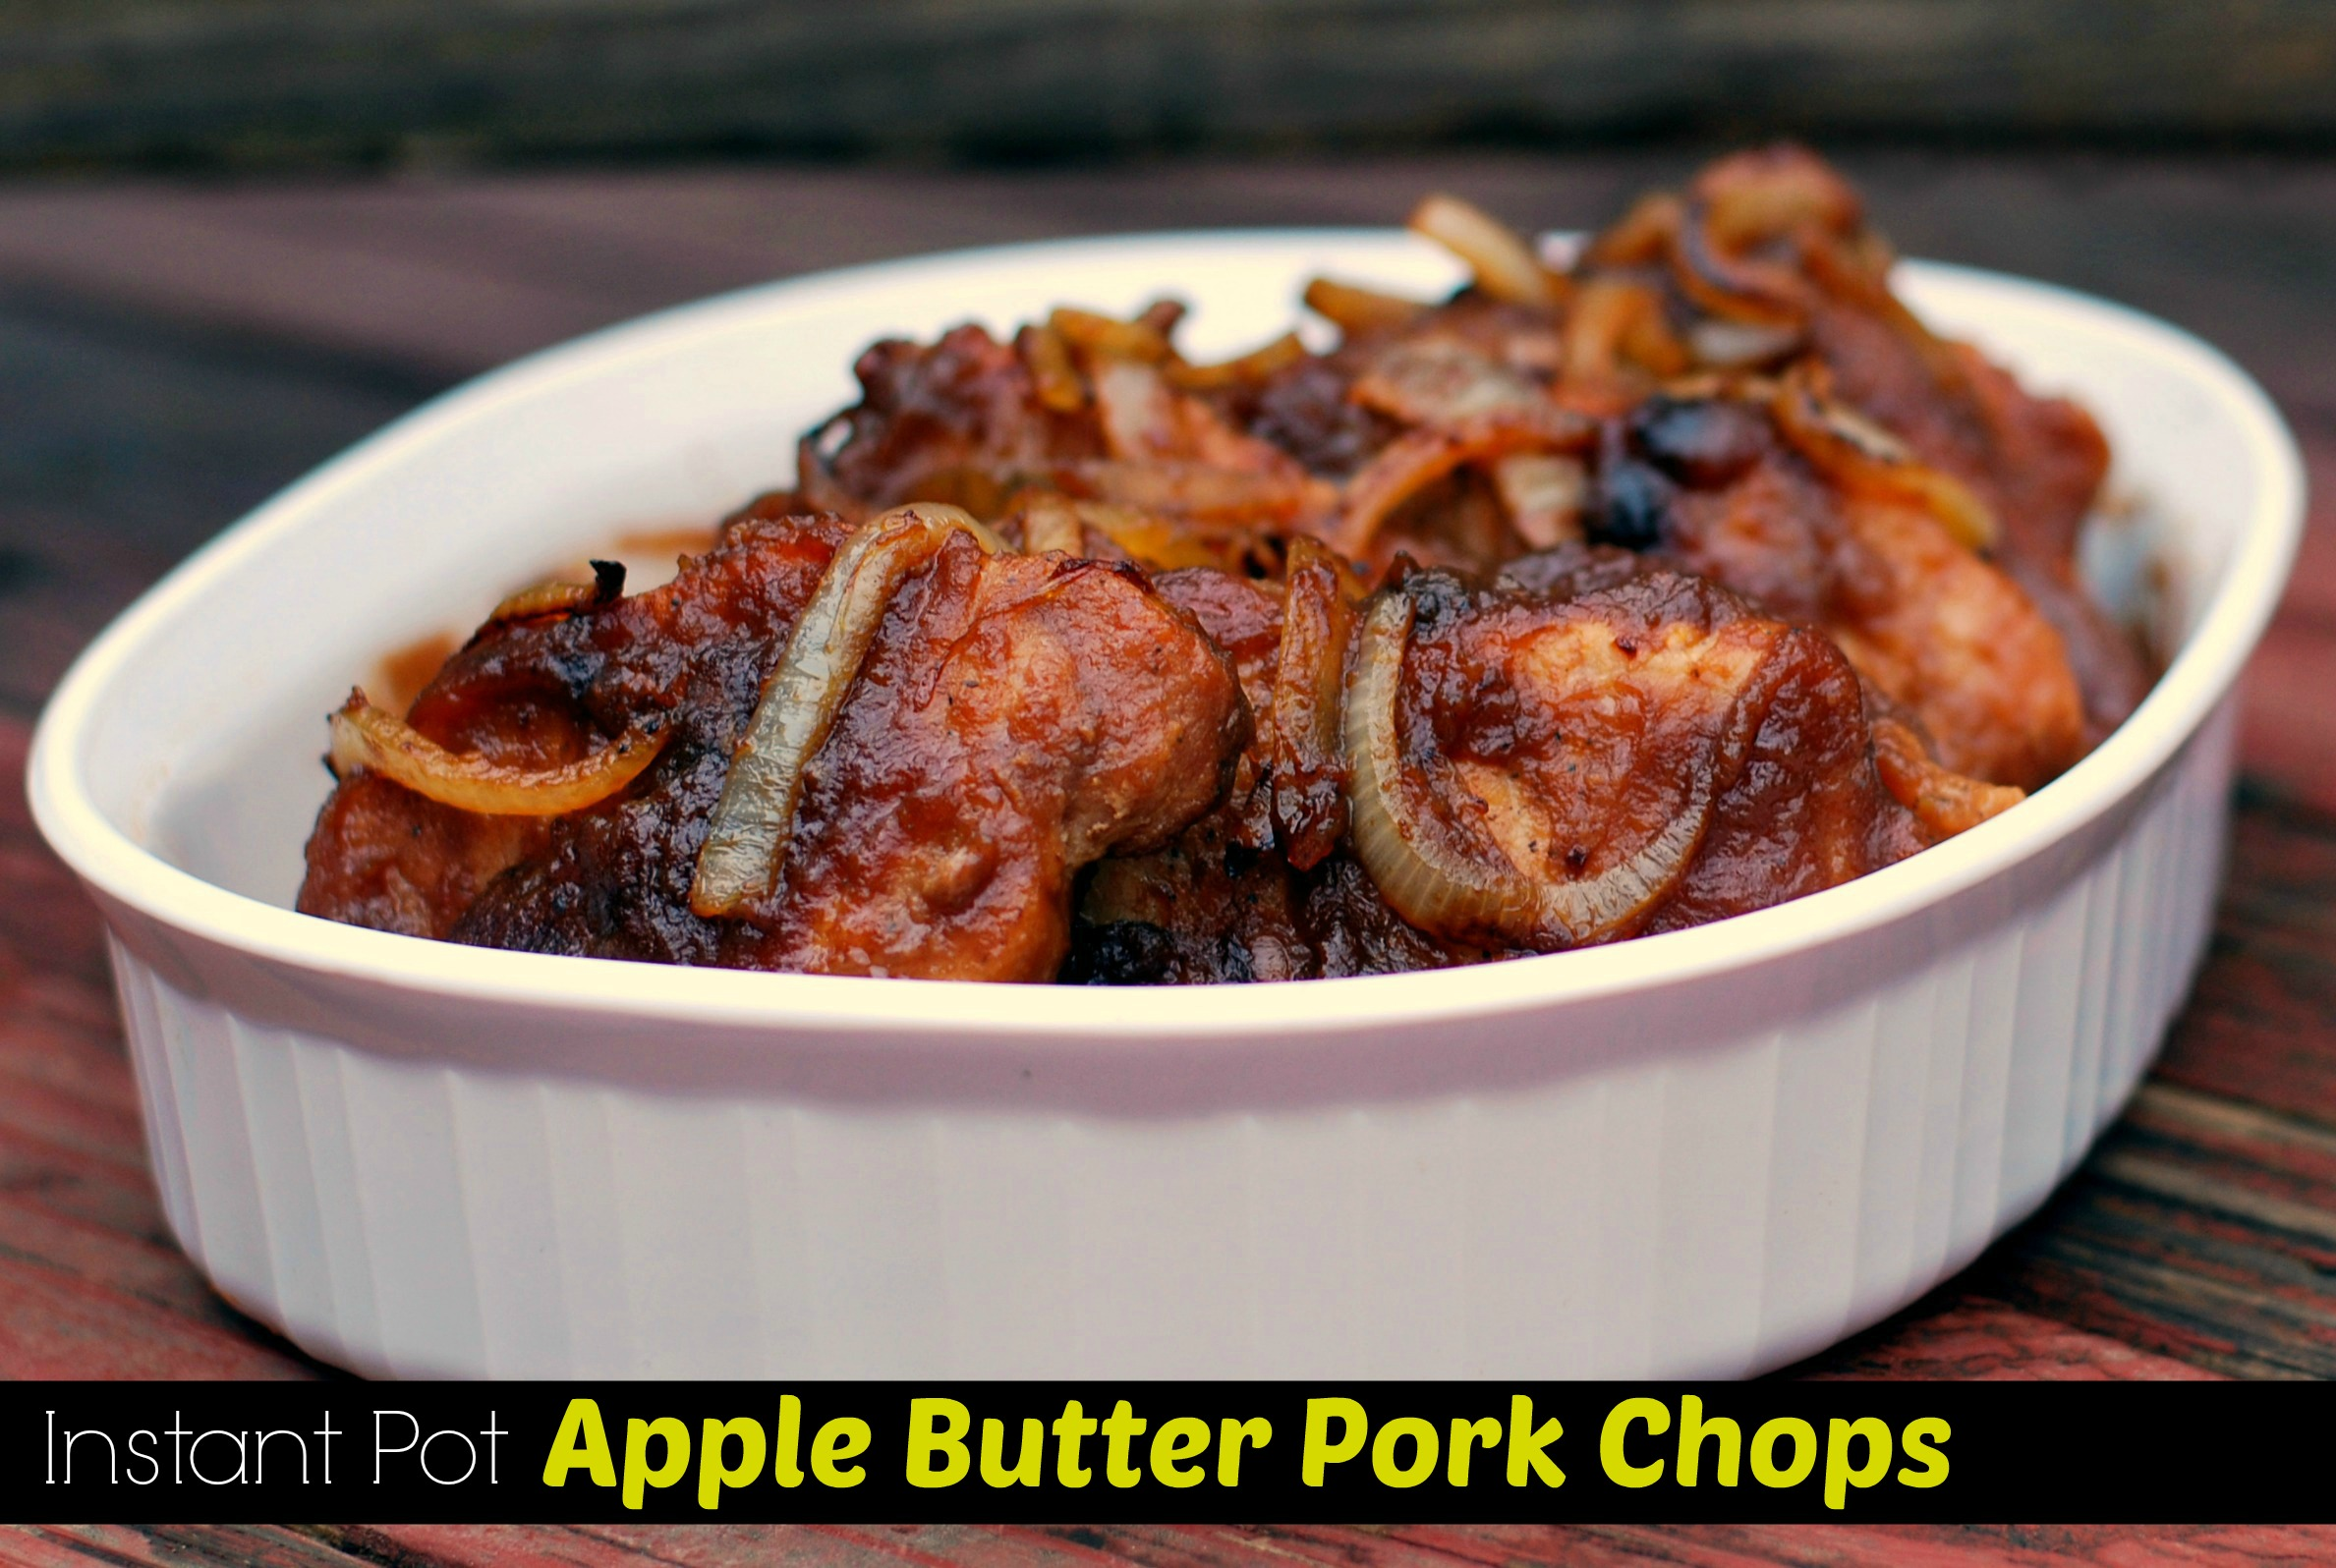 Instant Pot Apple Butter Pork Chops